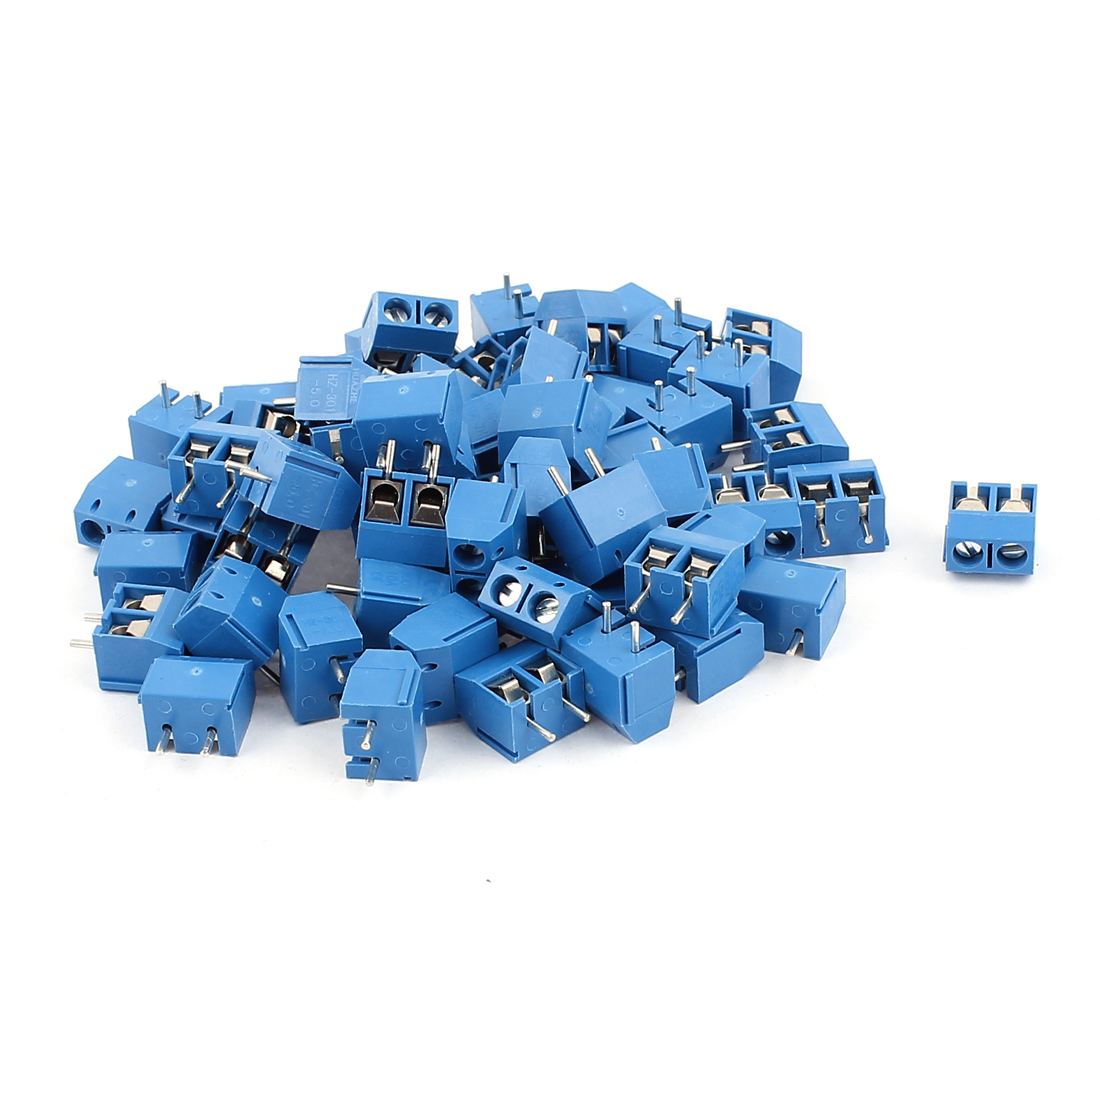 60pcs Straight 5mm Pitch Spacing PCB Board Mount Type Screw Terminal Blocks Connectors Blue